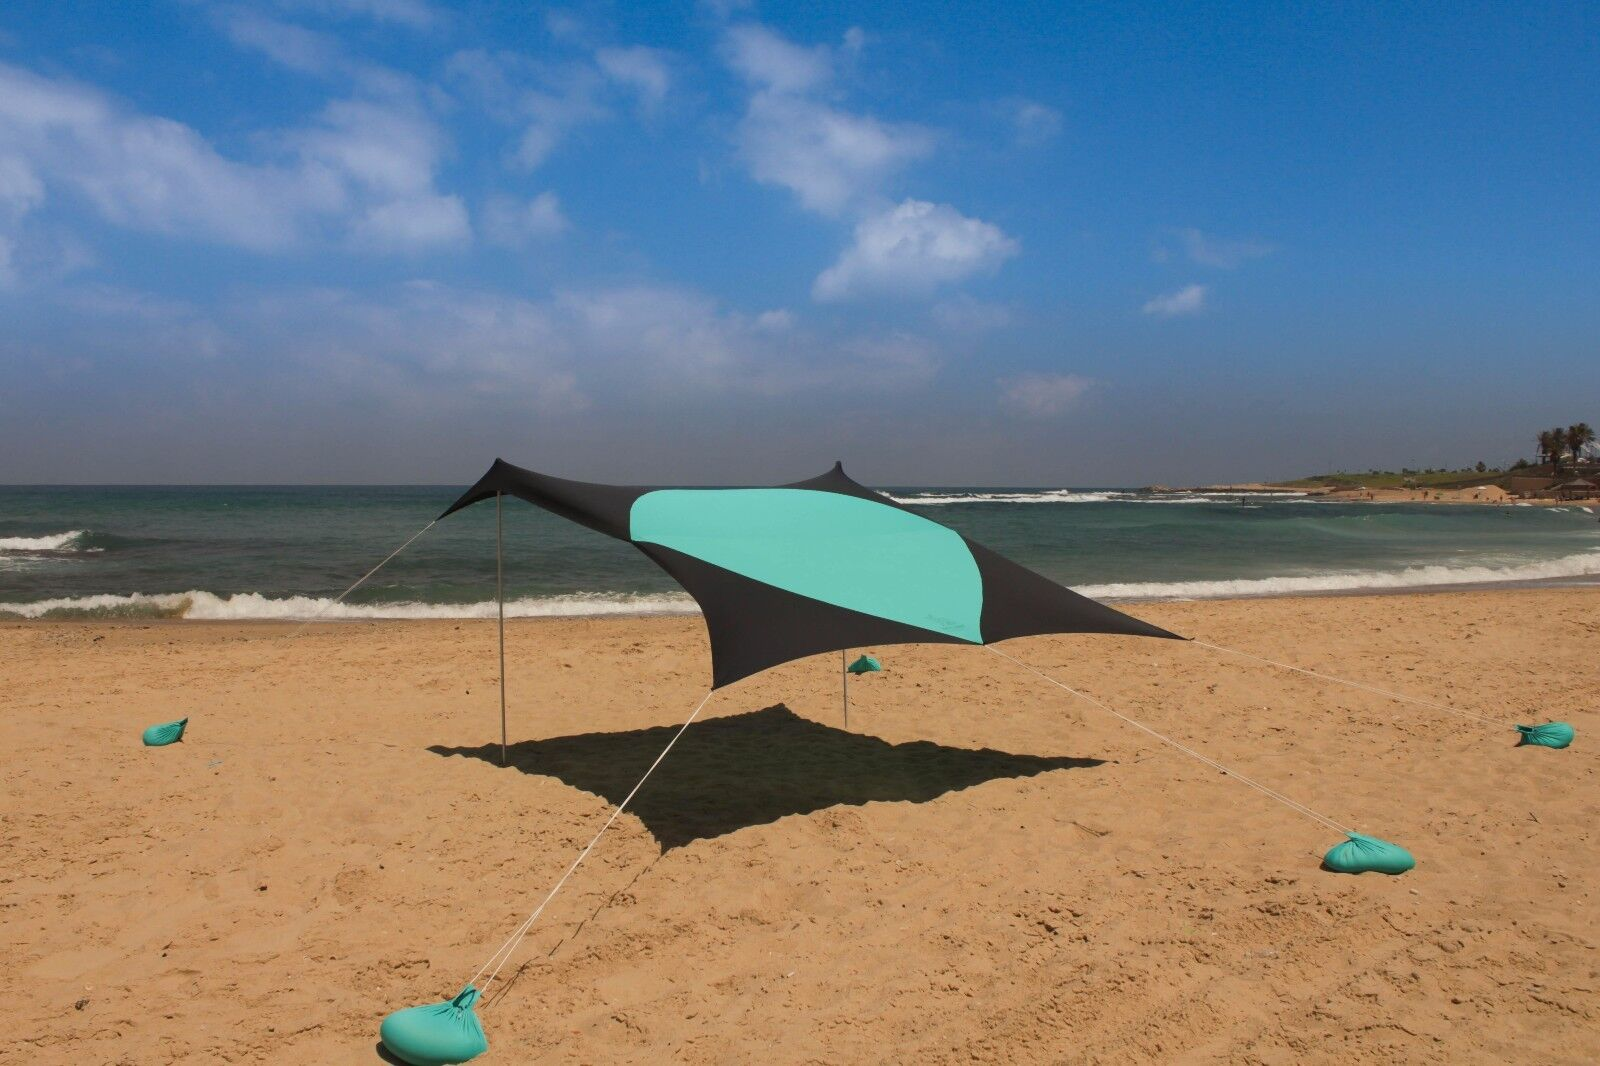 XL Beach Sun Shade 10ft x 10ft Canopy For 8 People by White Rabbit Art Studio